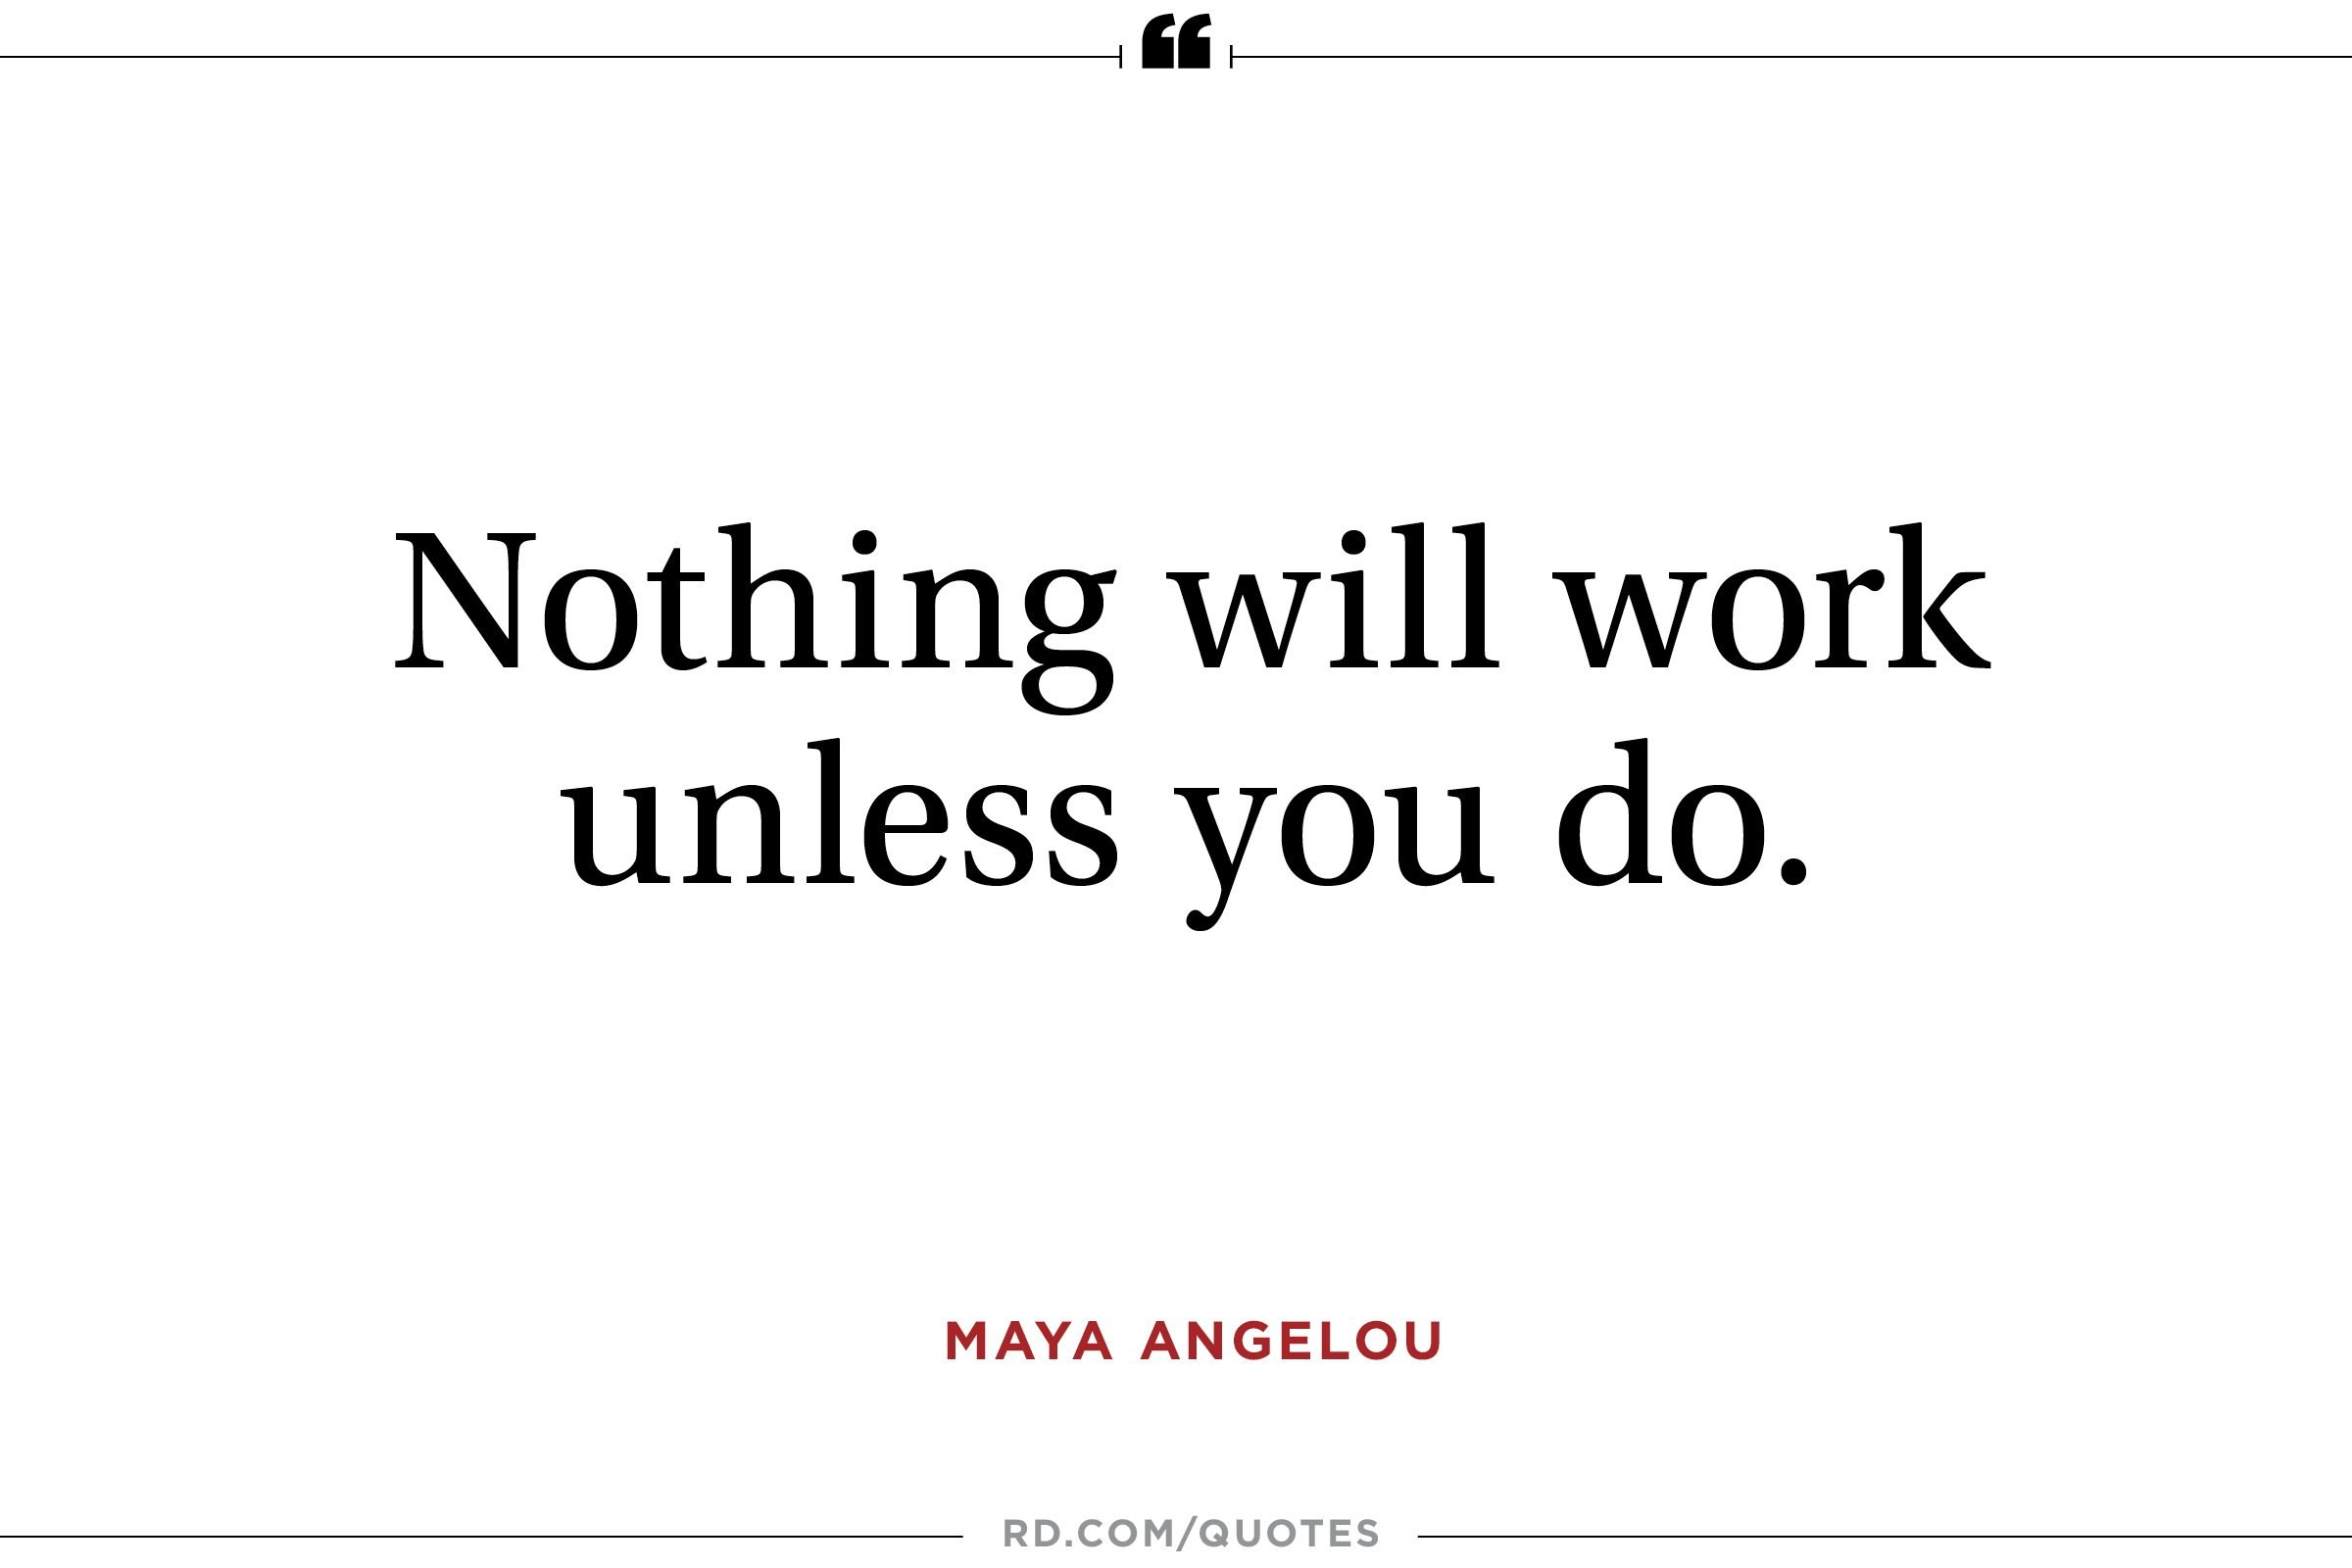 Quotable Quotes Maya Angelou At Her Best 8 Quotable Quotes  Reader's Digest